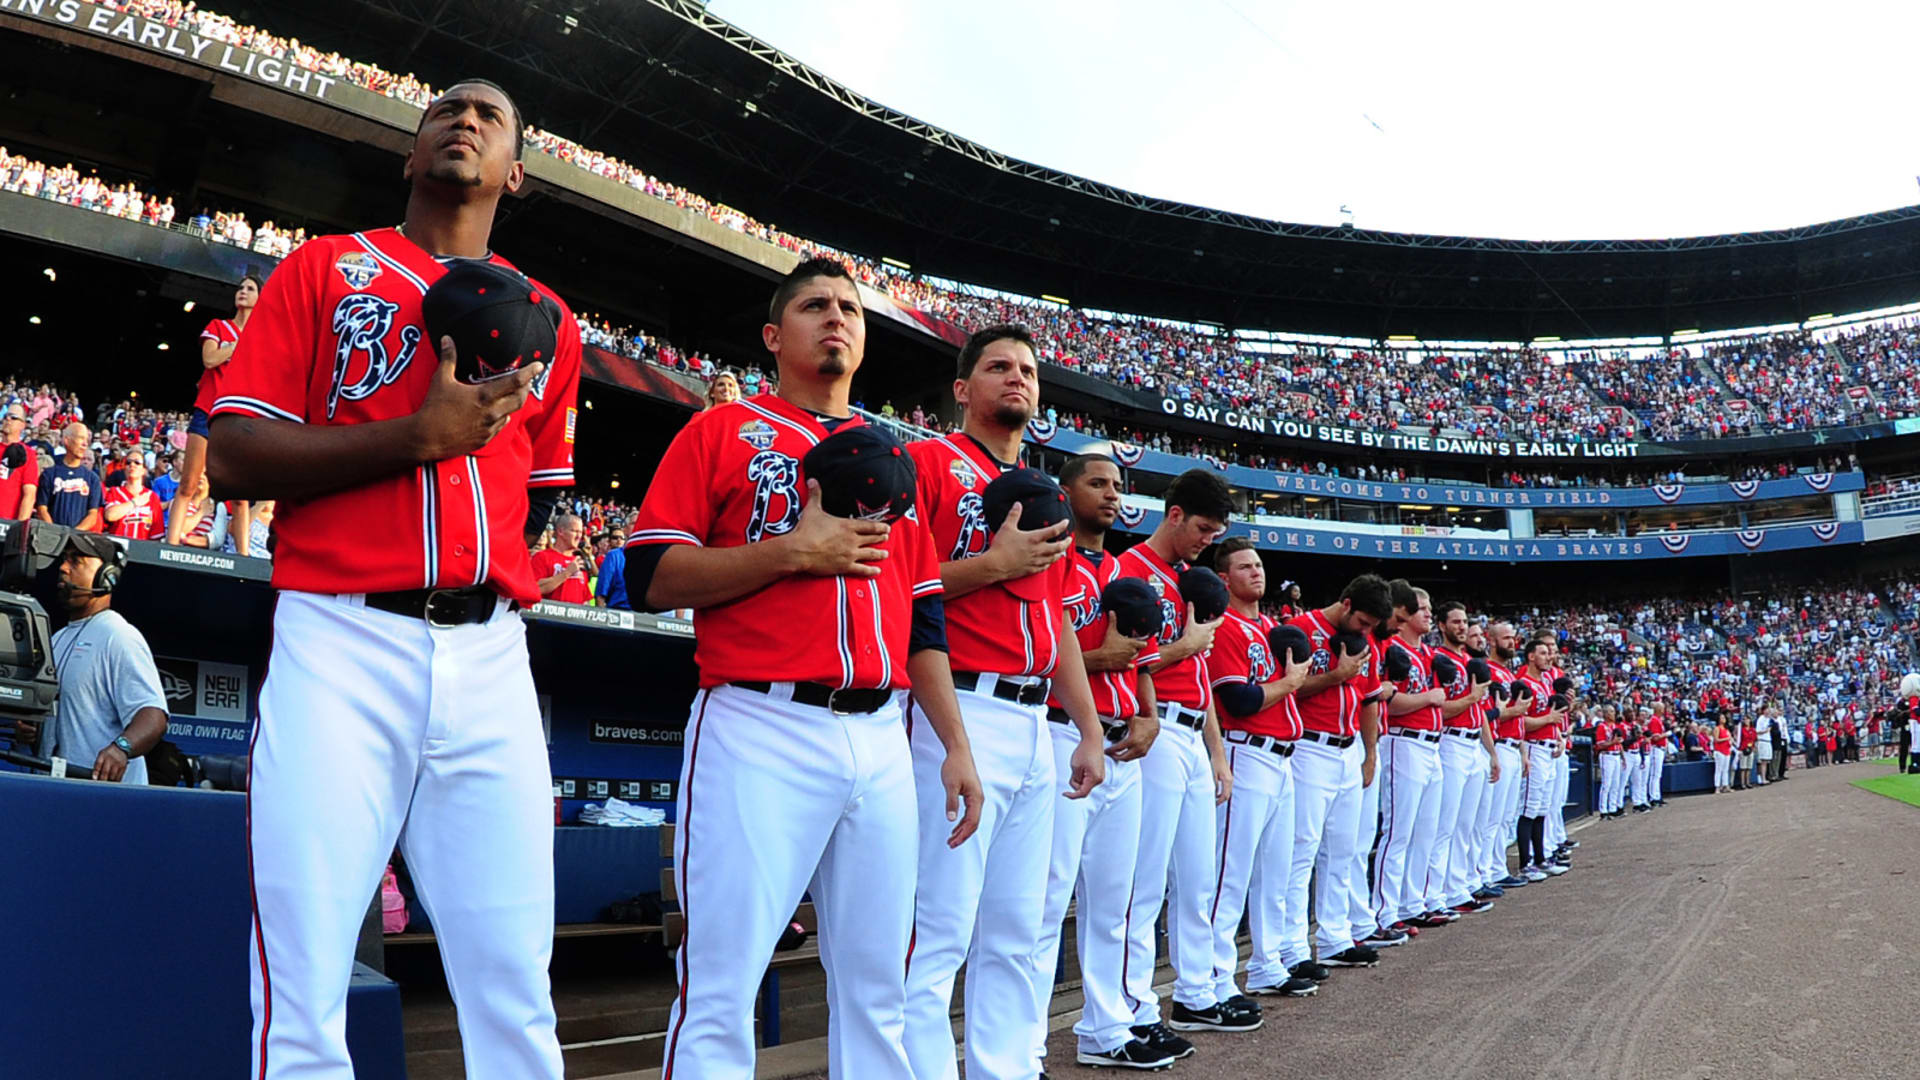 Braves Best Games on Independence Day in Last 10 Years 1920x1080